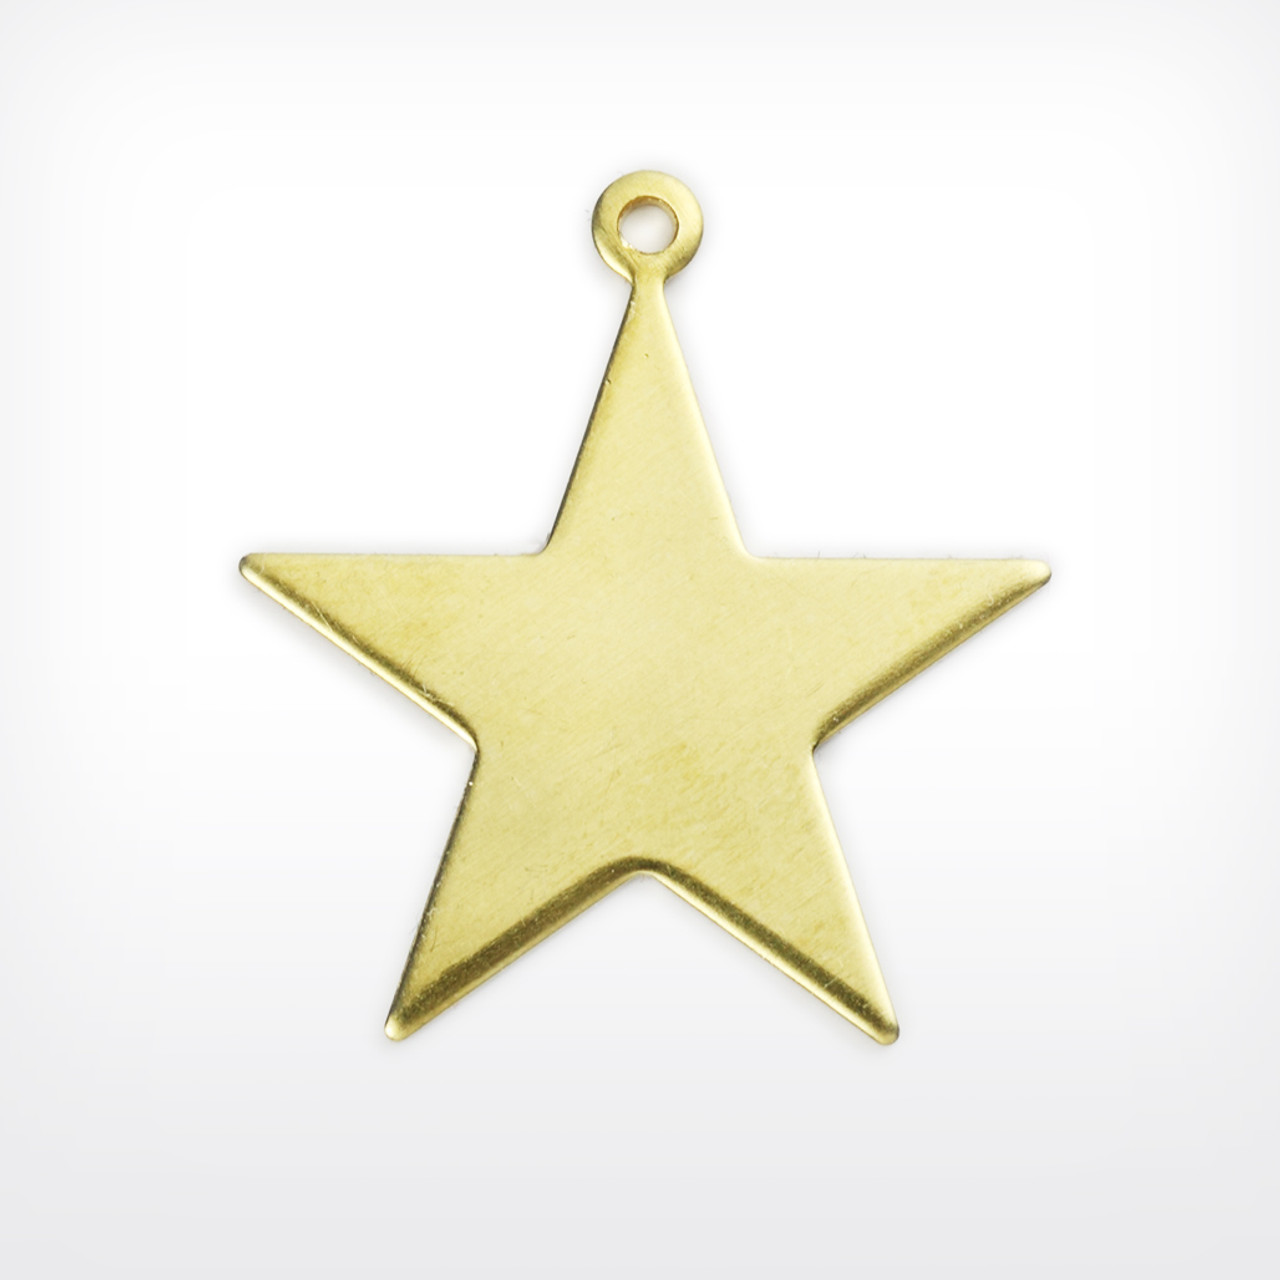 Brass Blank Stamped Star for Jewelry Metalwork and & Other Crafts